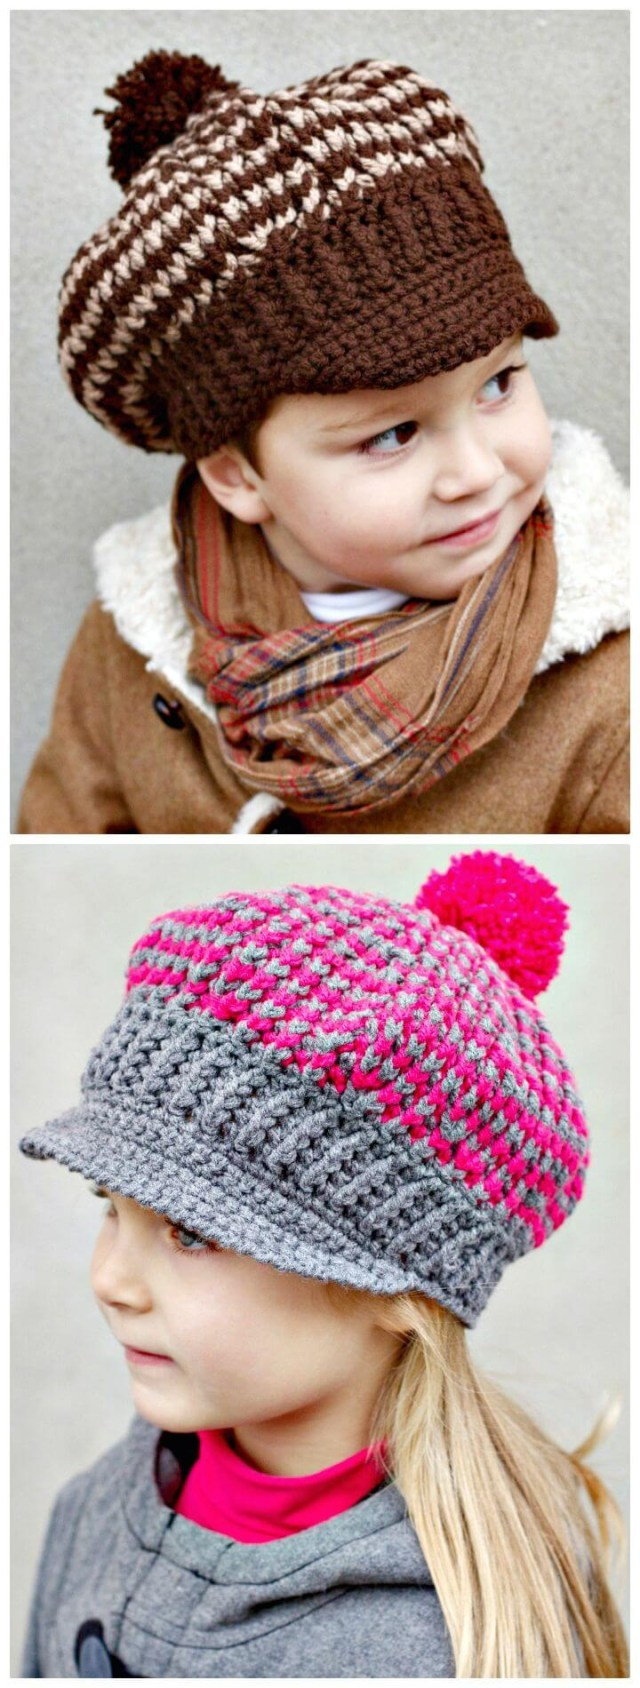 Crochet Newborn Newsboy Hat Pattern Free 15 Free Crochet Newsboy Hat Patterns Diy Crafts